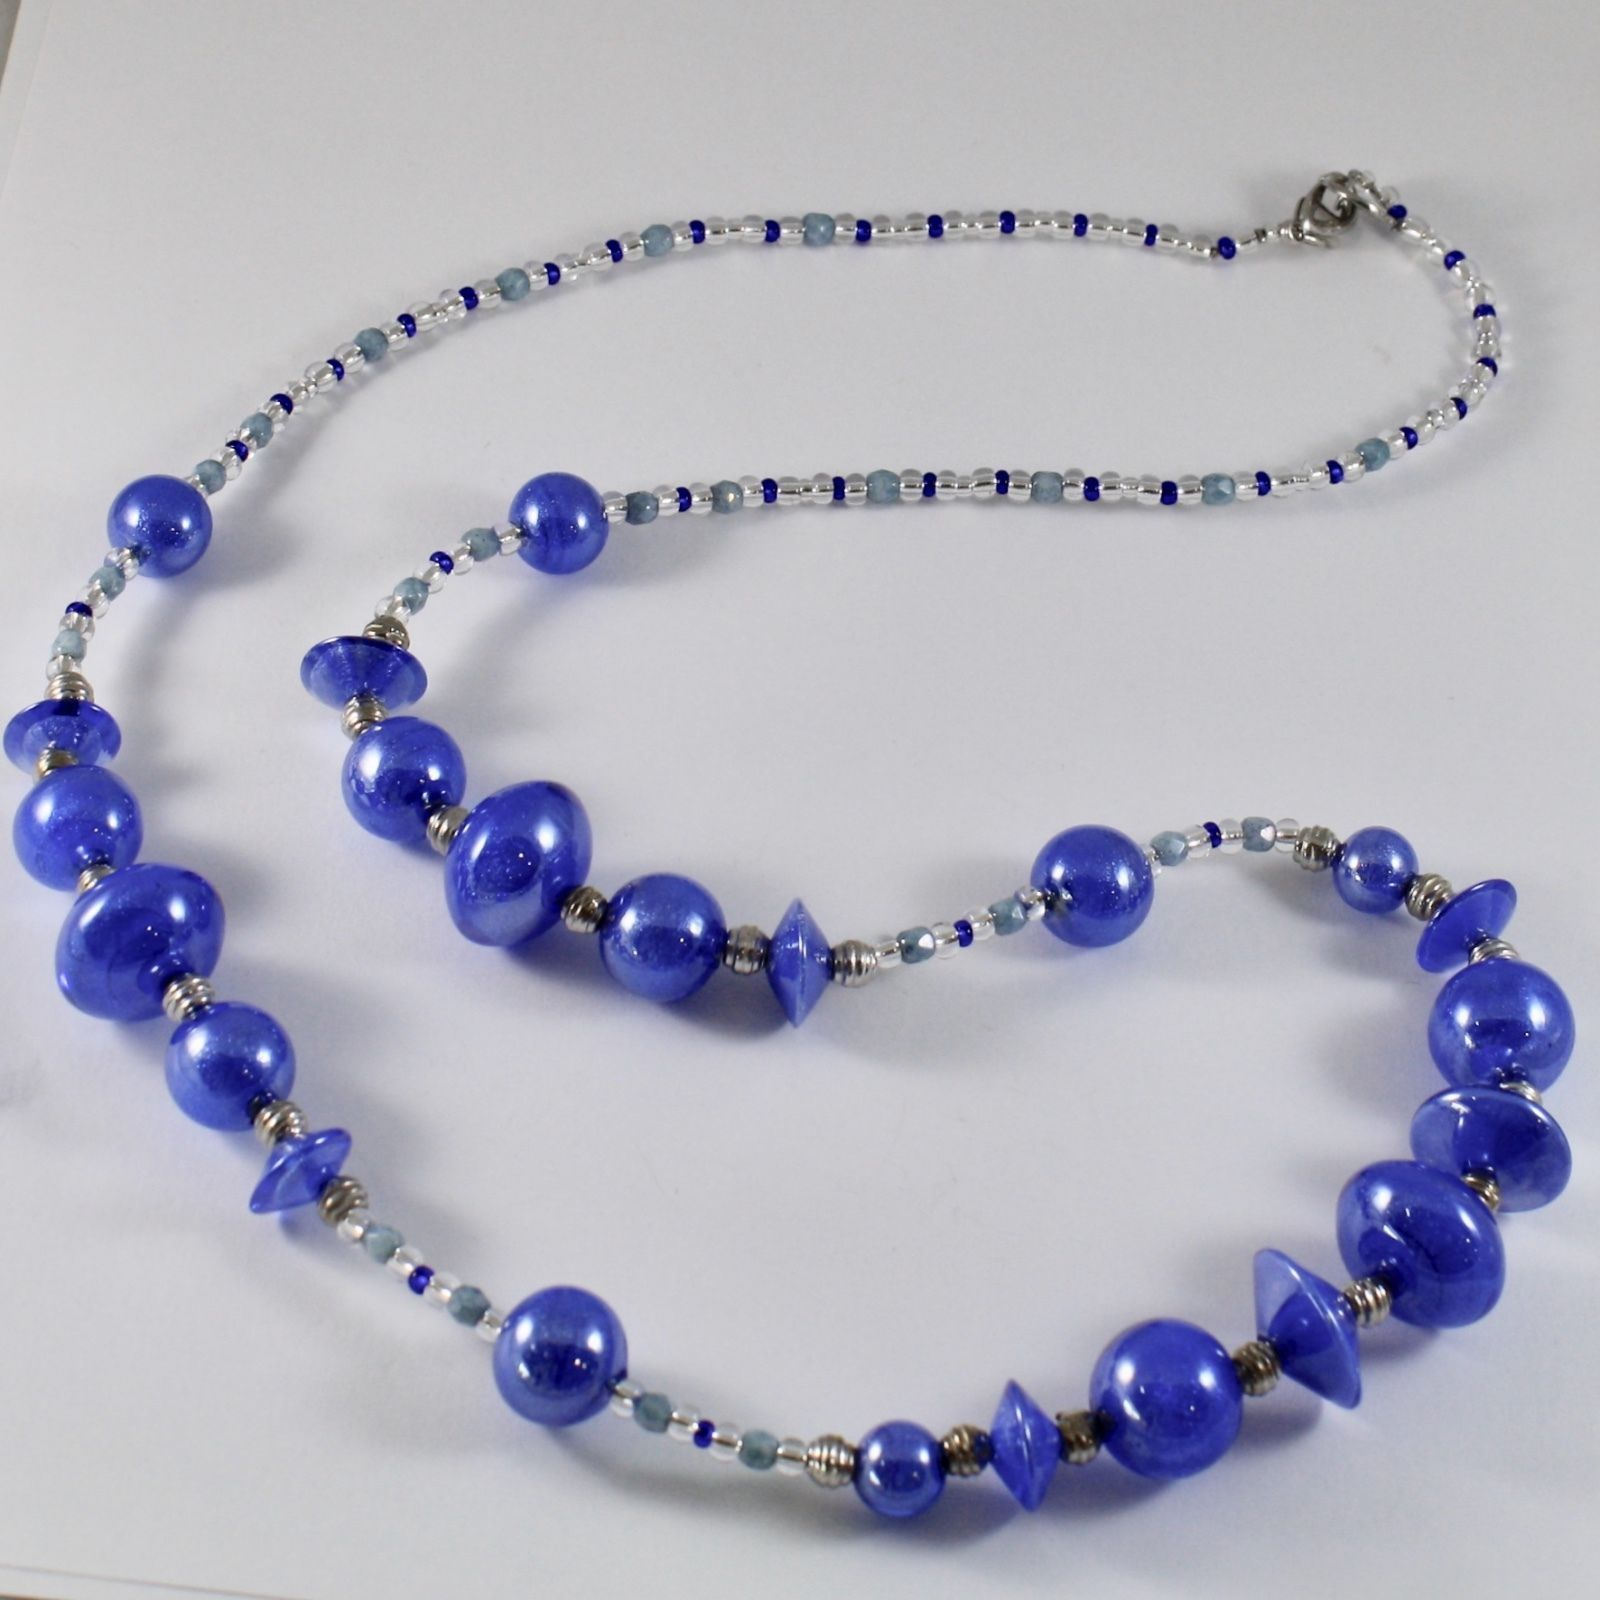 ANTICA MURRINA VENEZIA MINT NECKLACE WITH BLUE MURANO GLASS BEADS 31 INCHES LONG